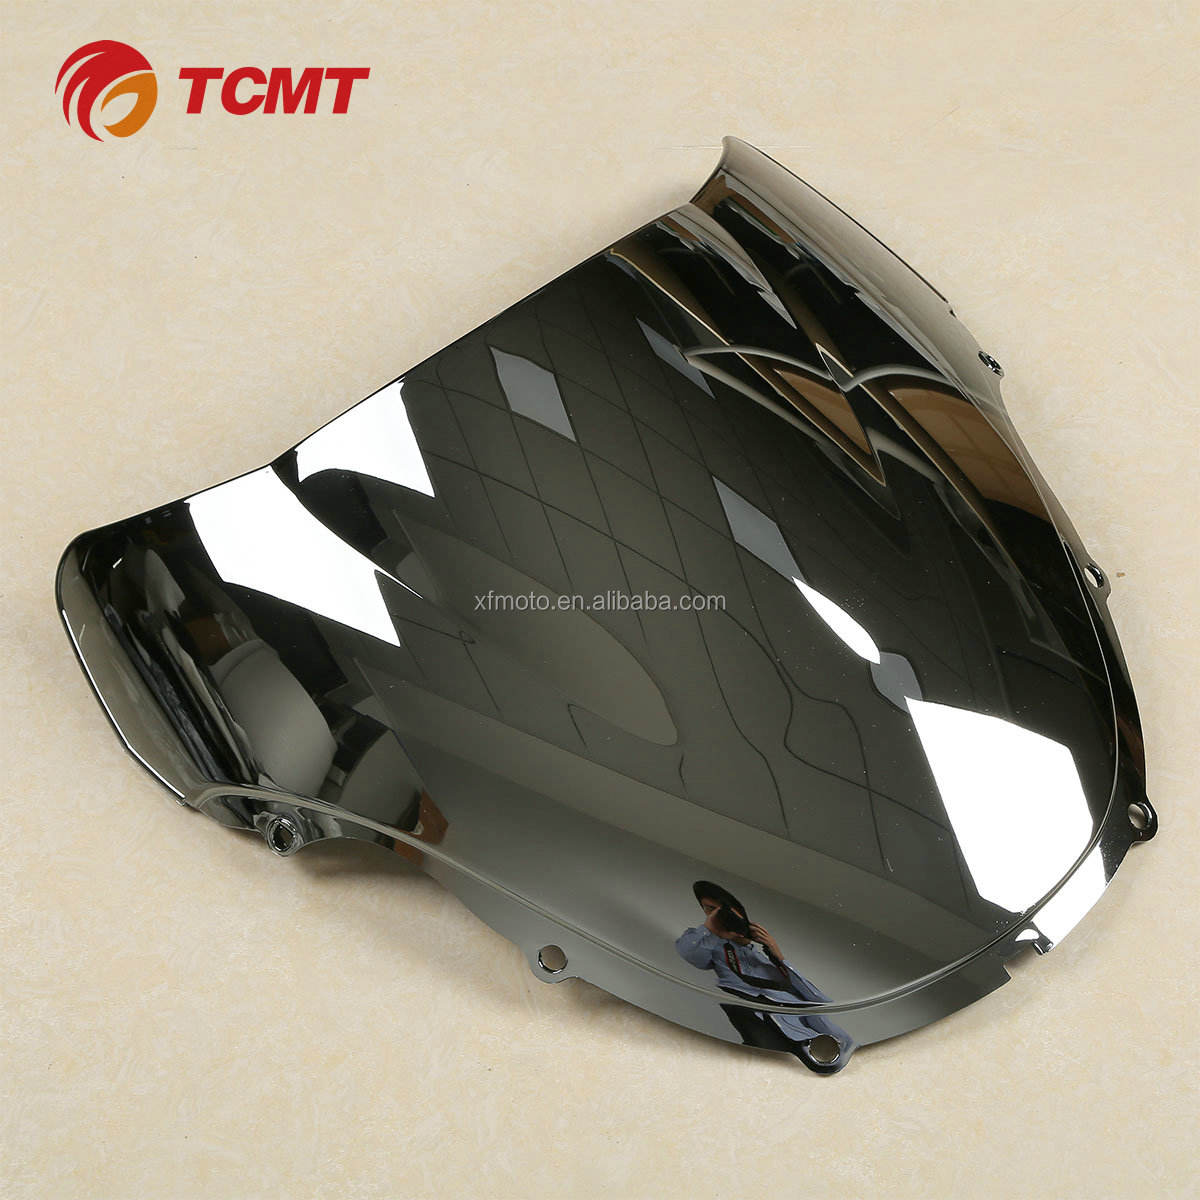 TCMT Motorcycle Chrome Windshield Windscreen FOR HONDA CBR600 F4 1999-2000